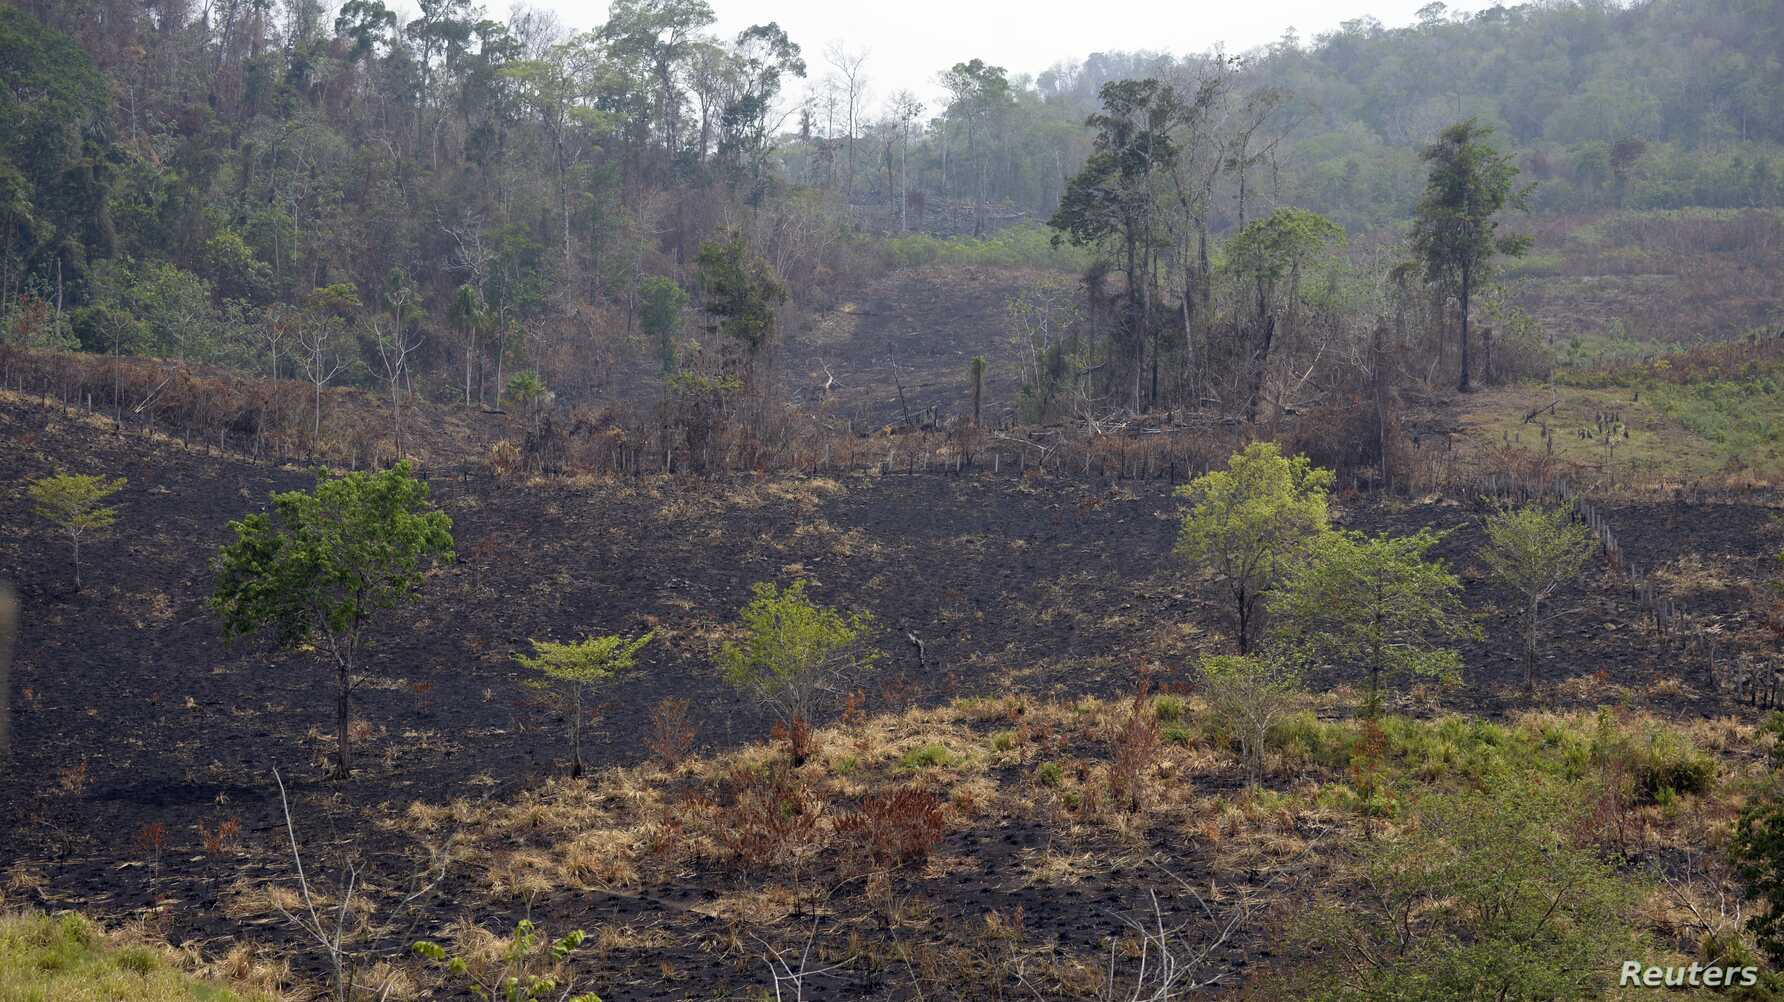 Land Rights Help Fight Fires in Guatemala Nature Reserve